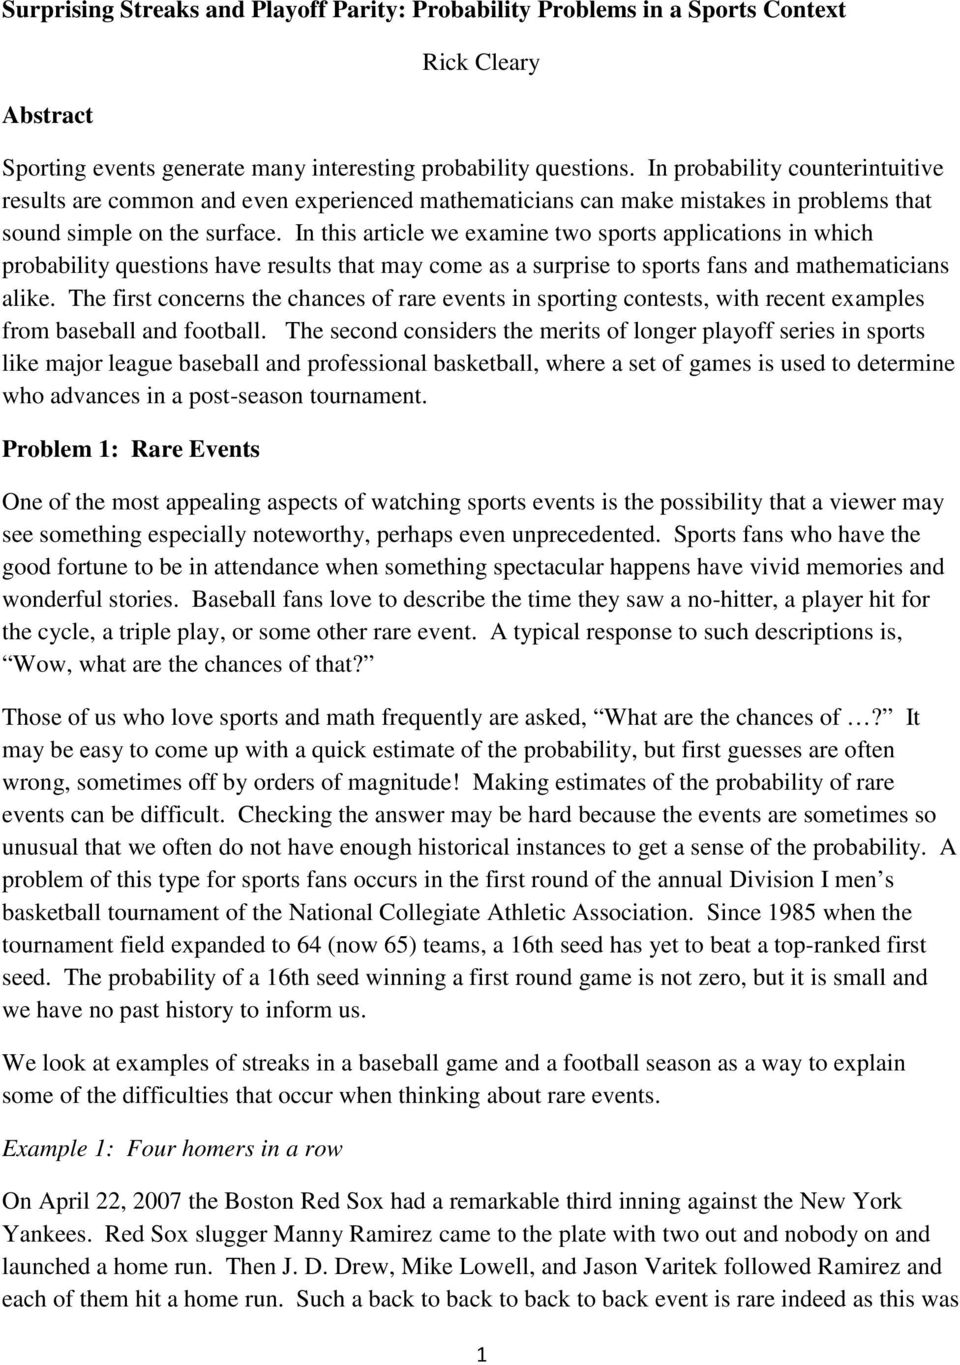 In this article we examine two sports applications in which probability questions have results that may come as a surprise to sports fans and mathematicians alike.